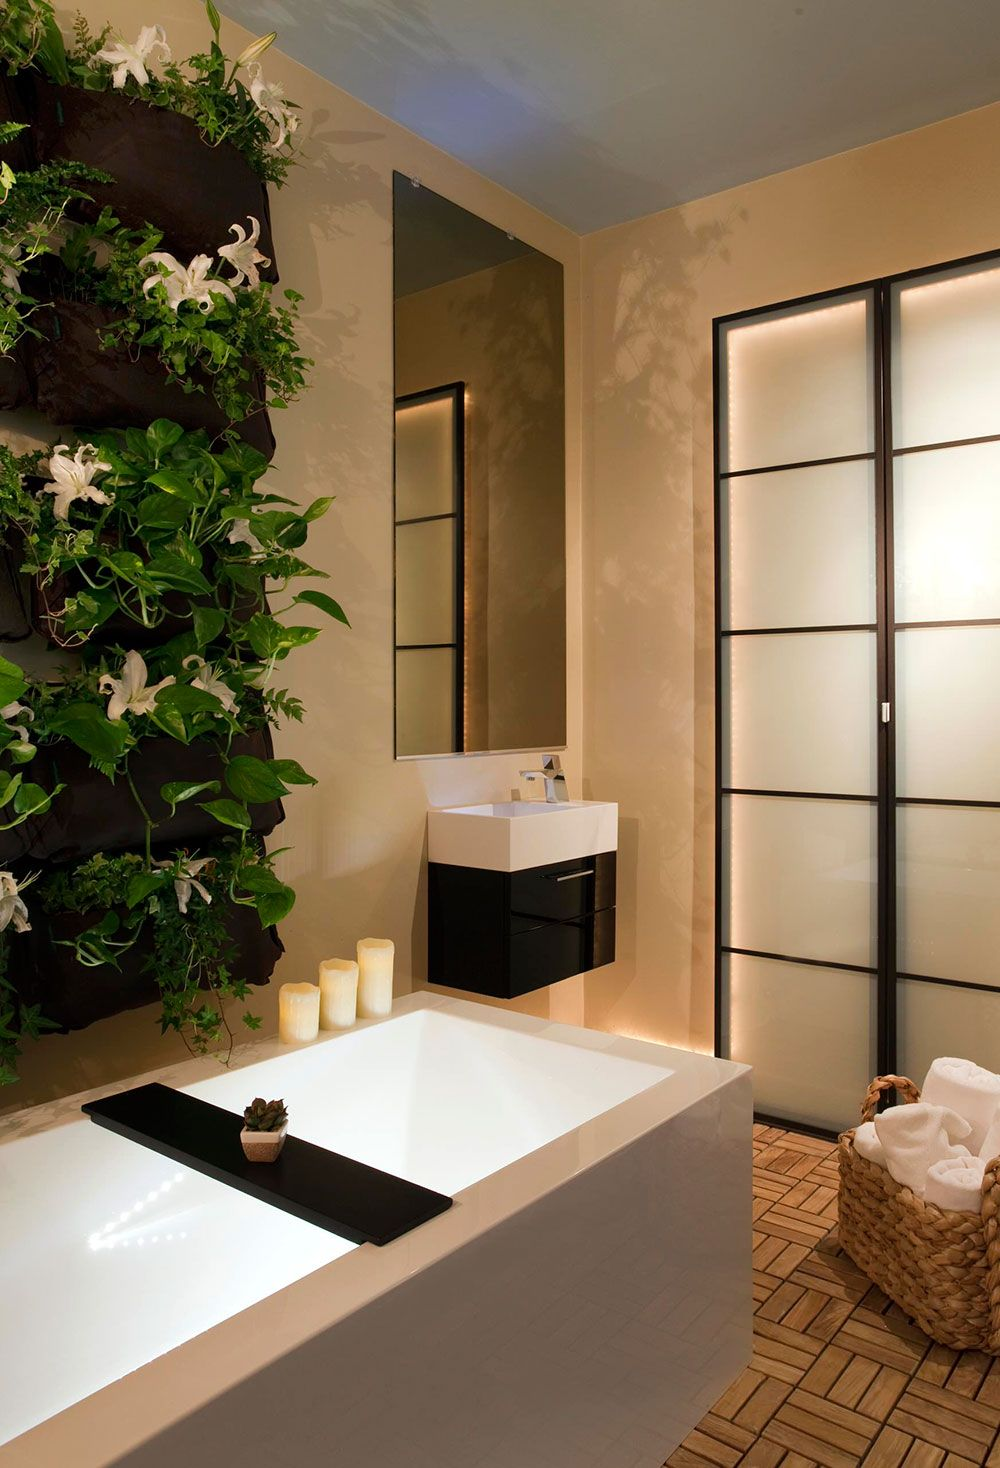 Tips For A Spa Bathroom Makeover  Spa Bathrooms Spa And Window Sizes Glamorous Luxury Spa Bathroom Designs Decorating Inspiration